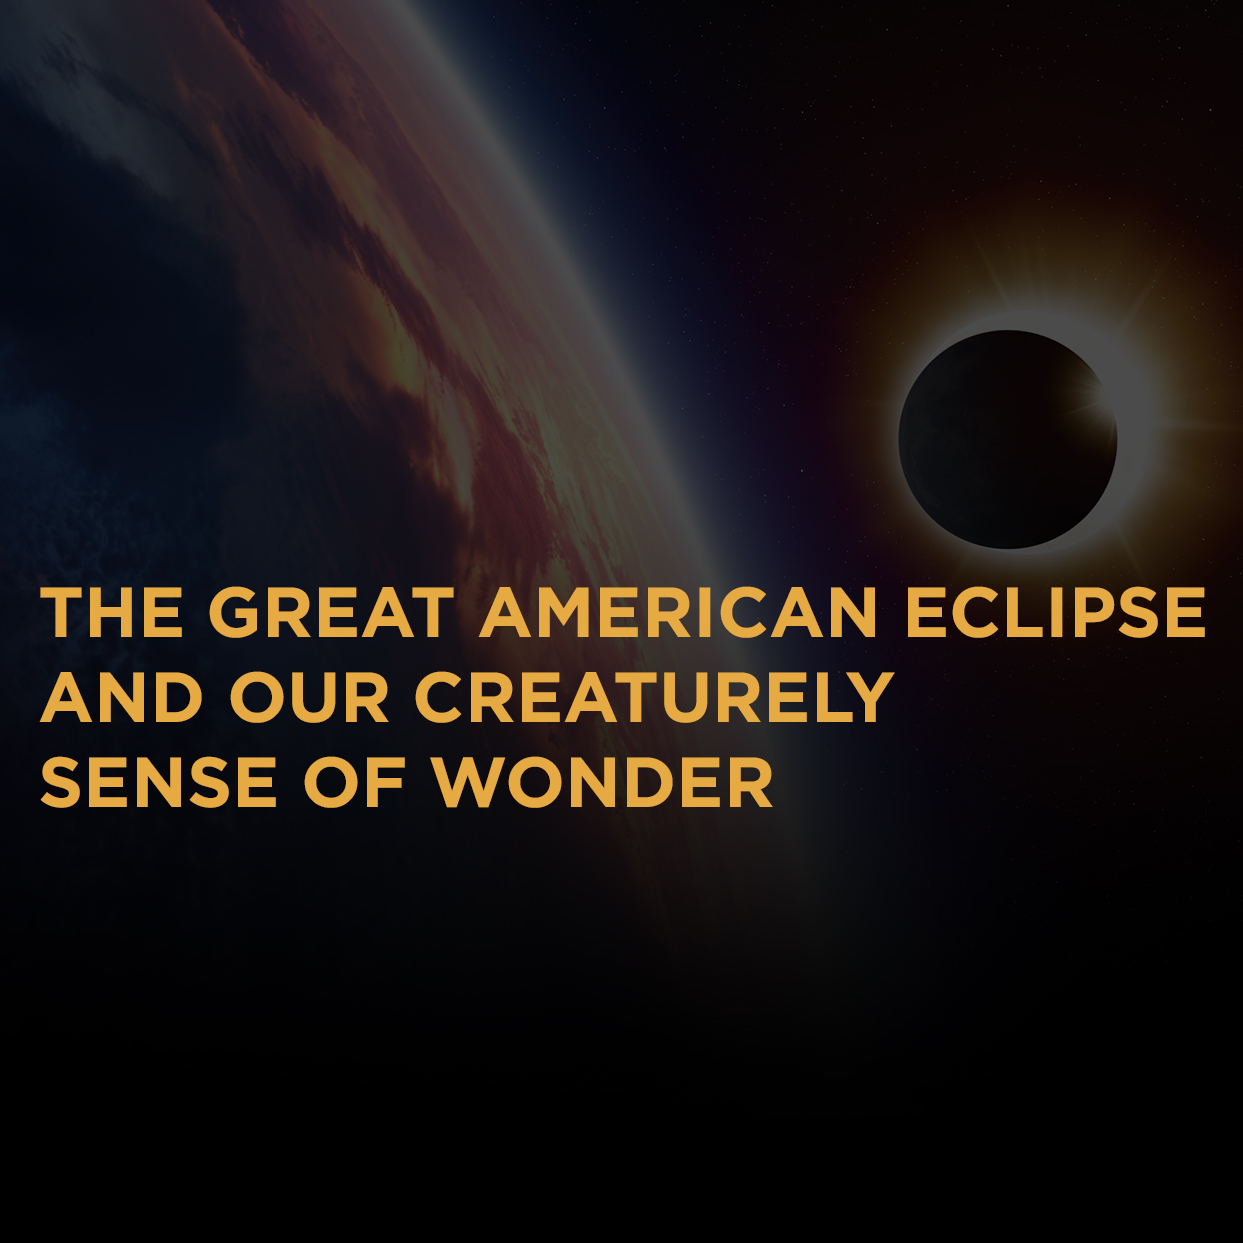 The Great American Eclipse – Bible Study